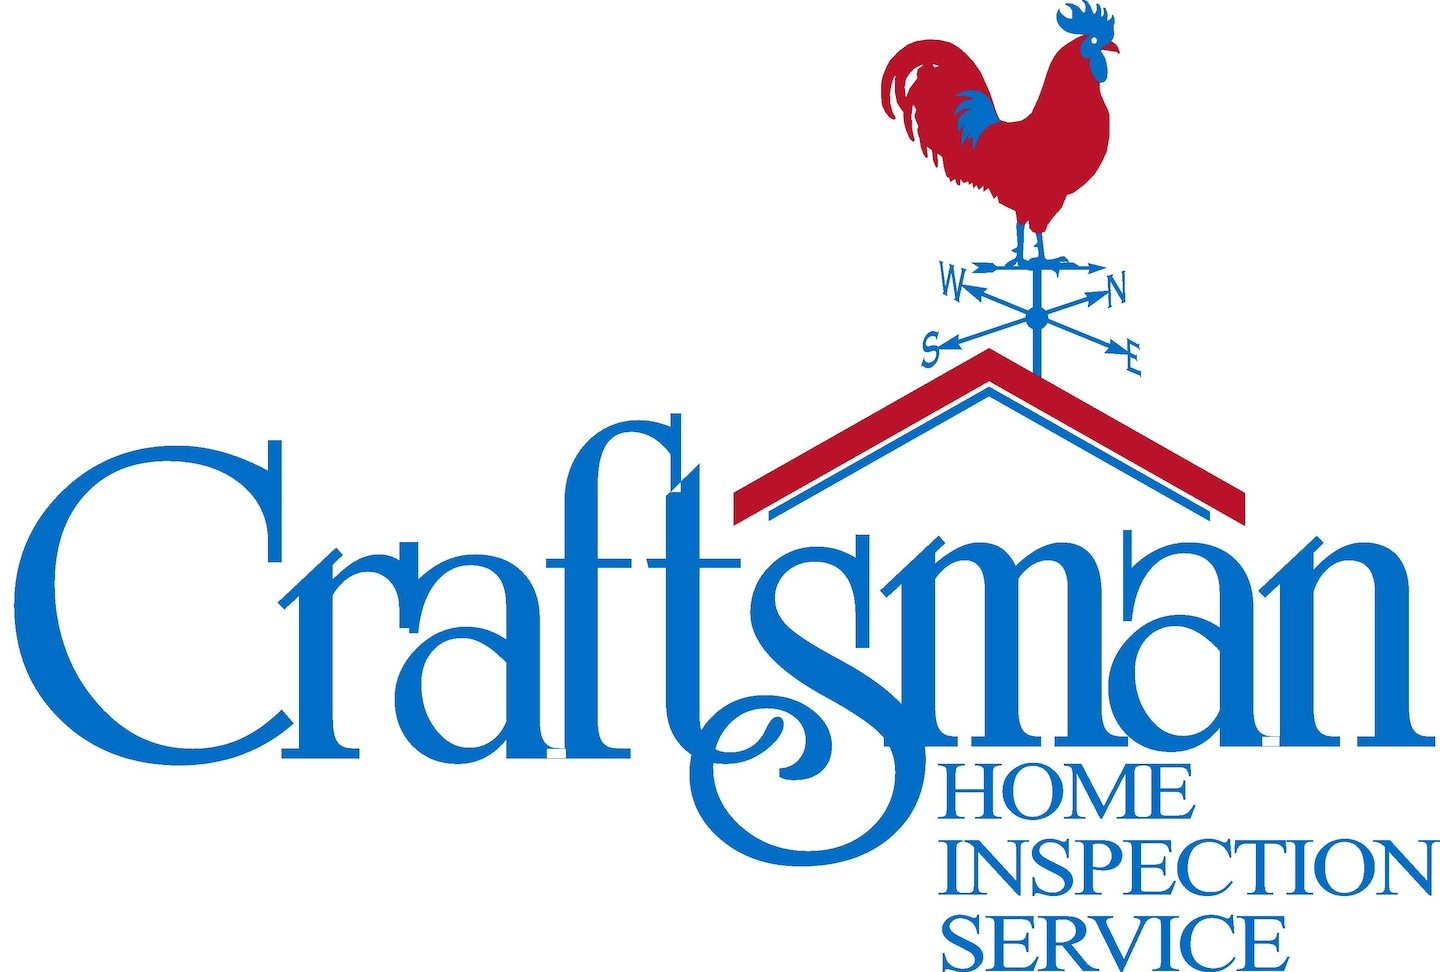 CRAFTSMAN HOME INSPECTION SERVICE